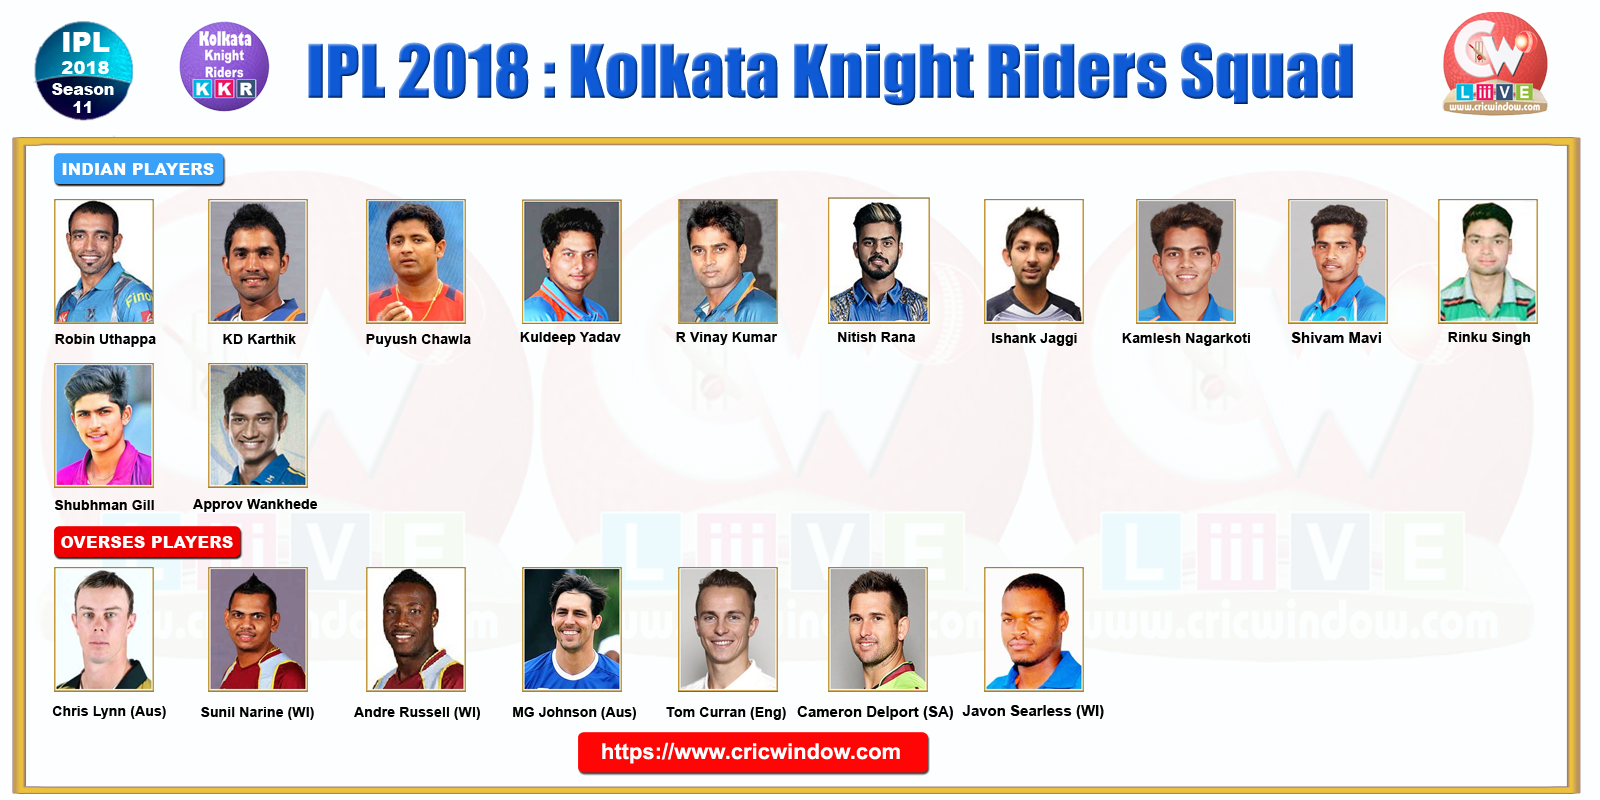 Kolkata Knight Riders team 2018